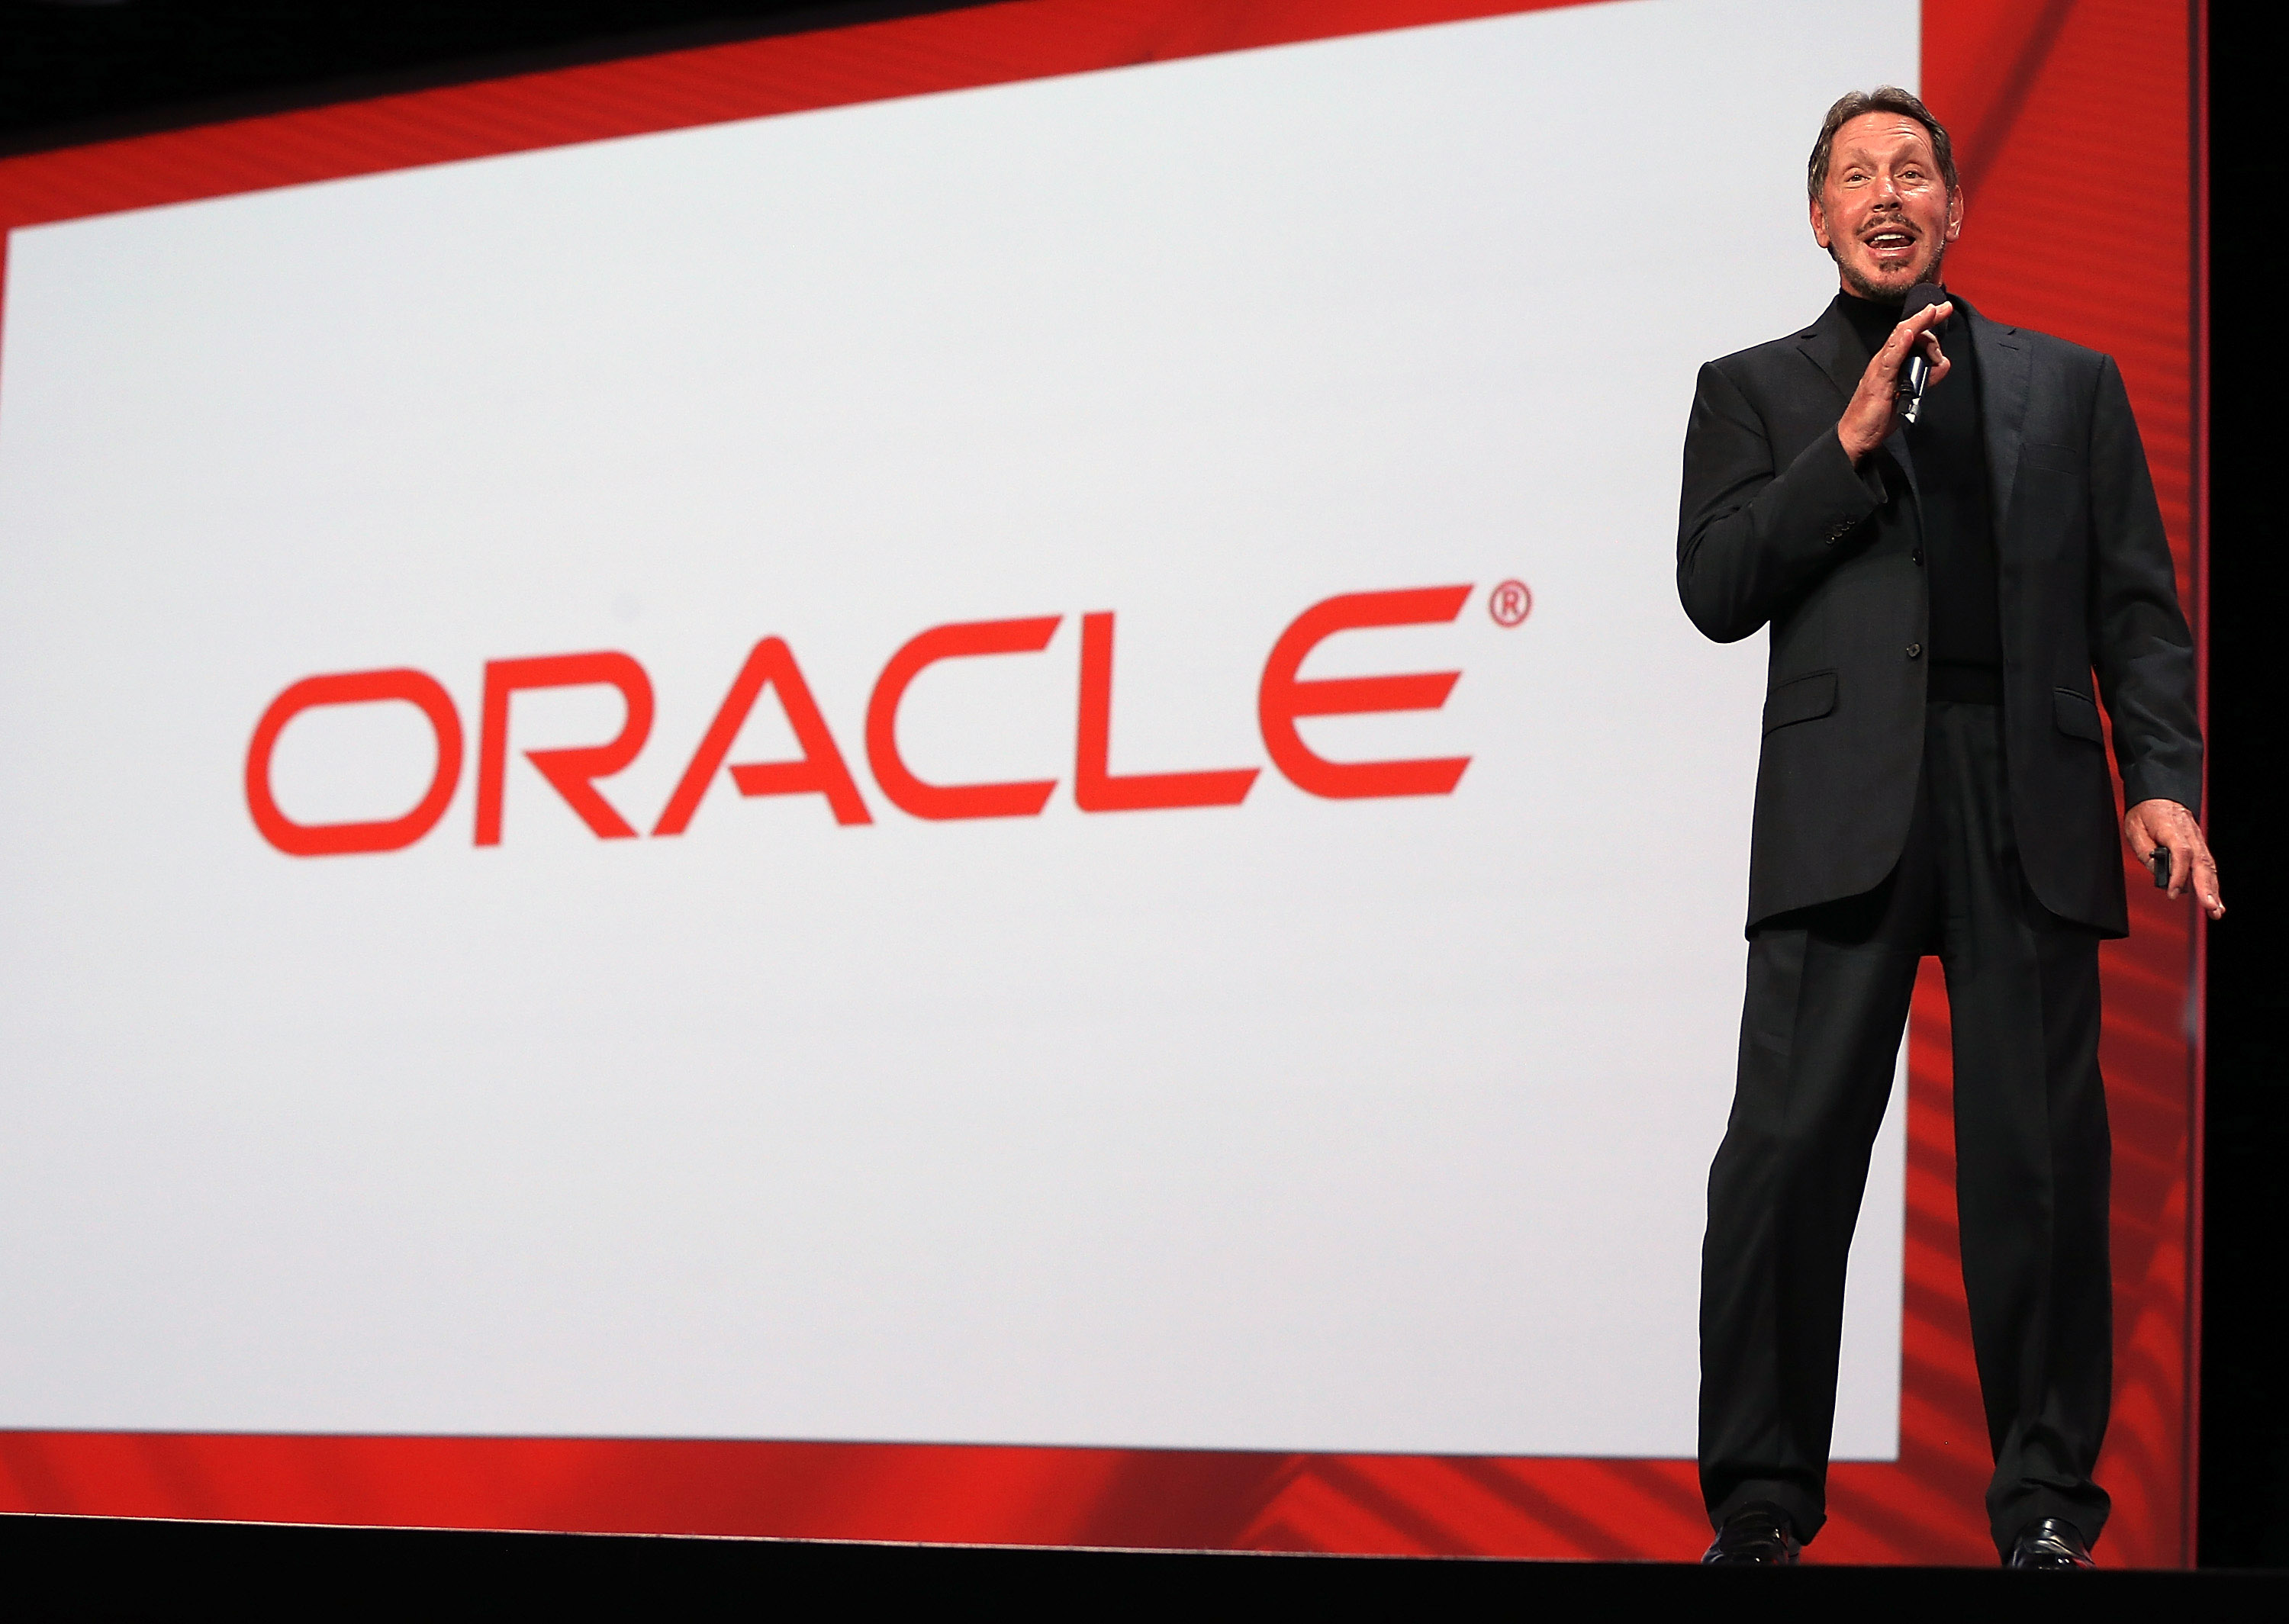 Oracle CEO Larry Ellison delivers a keynote address during the 2012 Oracle Open World conference on September 30, 2012 in San Francisco, California. (Photo by Justin Sullivan/Getty Images)